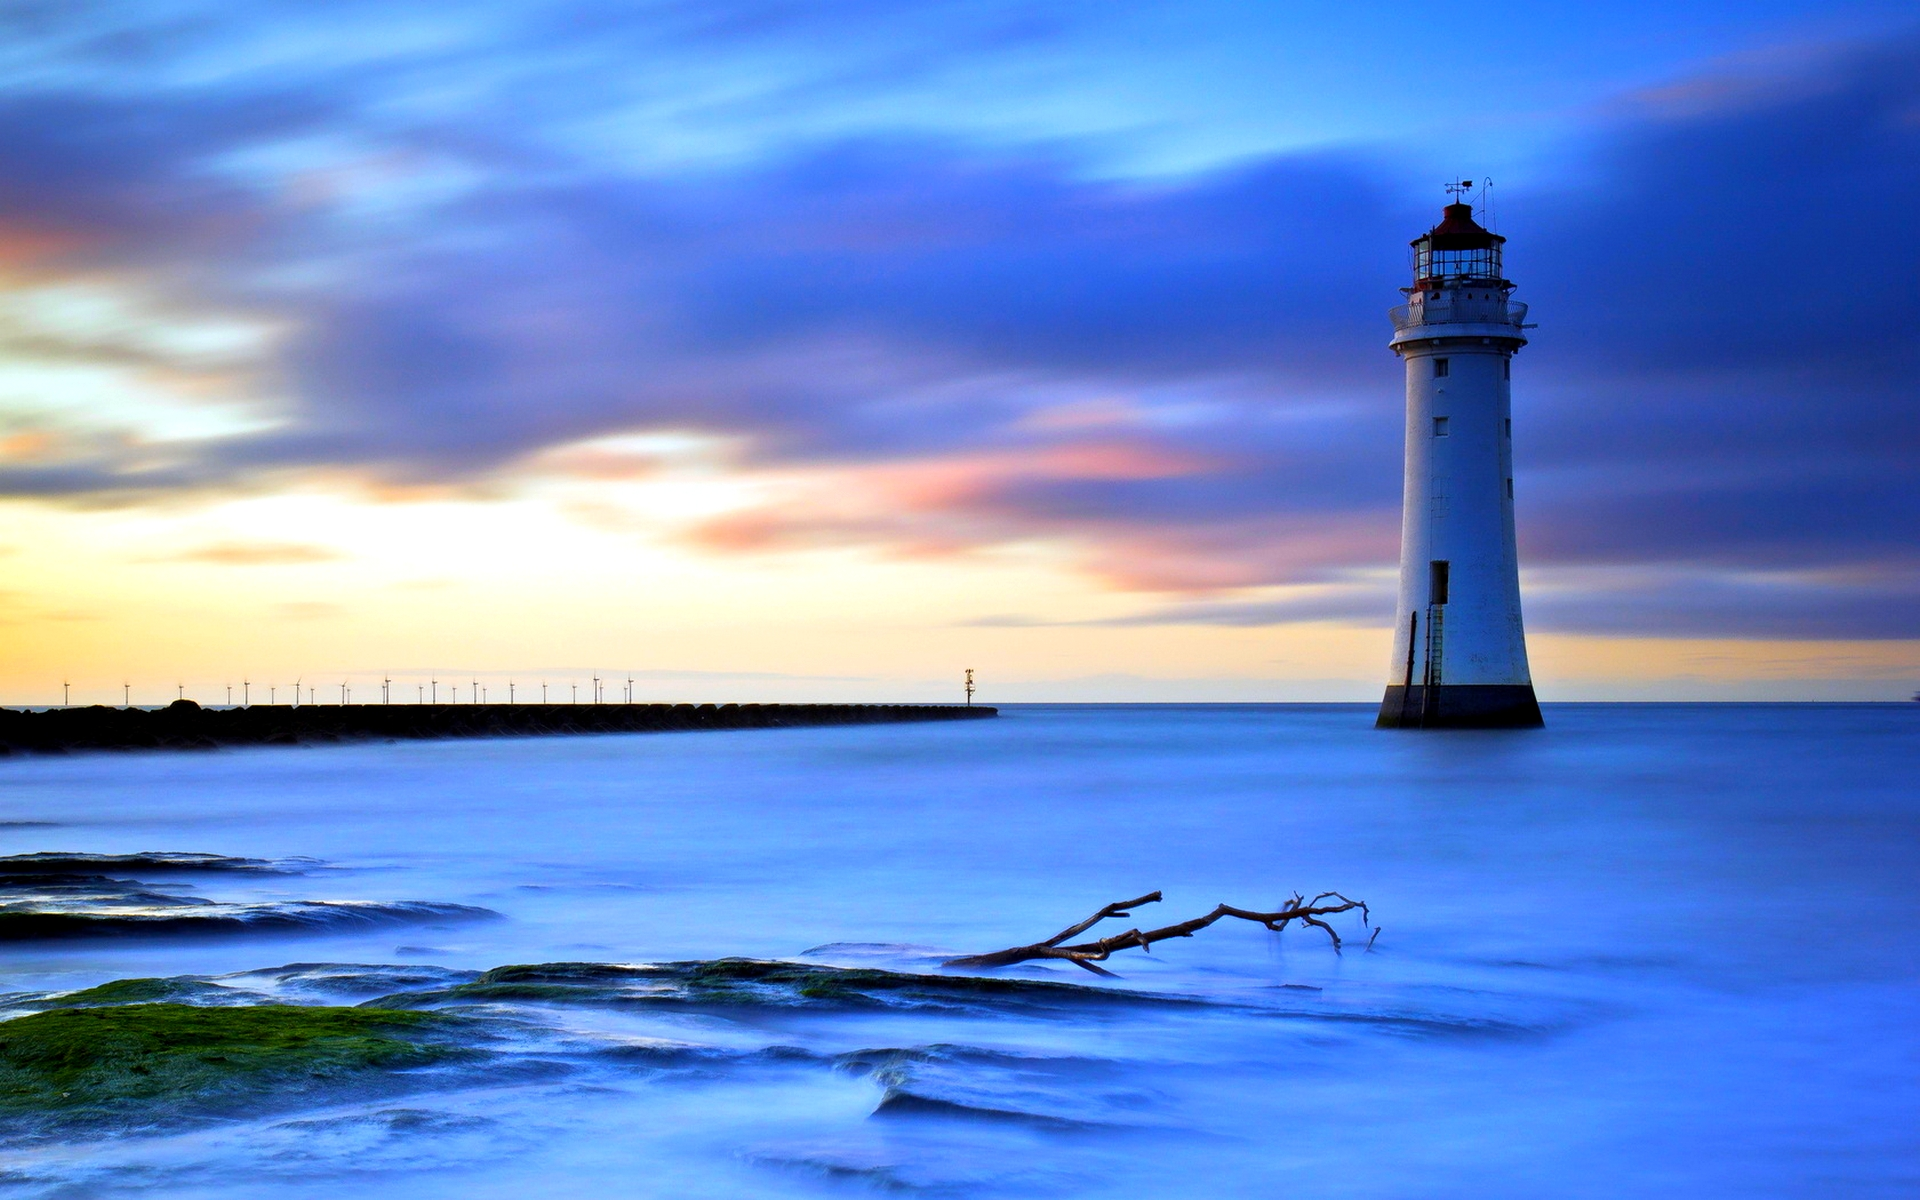 Lighthouse Background Beautiful Lighthouse Background For Wallpaper Nature And